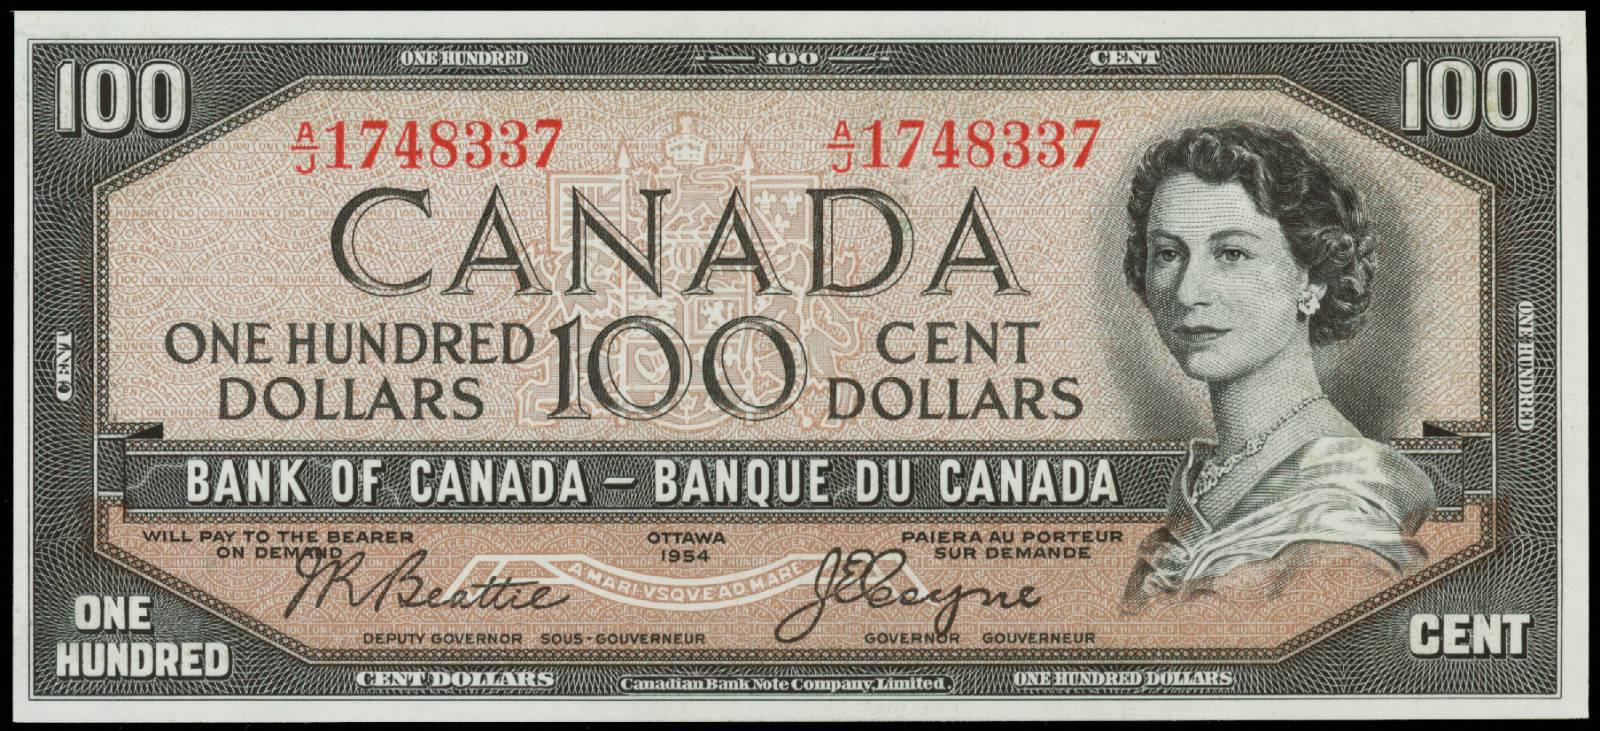 Value of 1954 Devils Face $100 Bill from The Bank of Canada